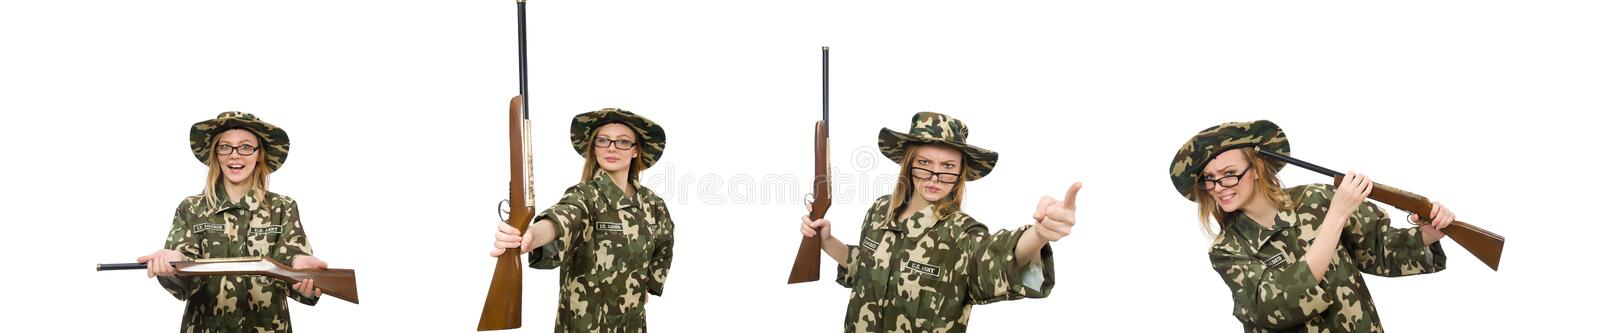 Girl in military uniform holding the gun isolated on white royalty free stock photo